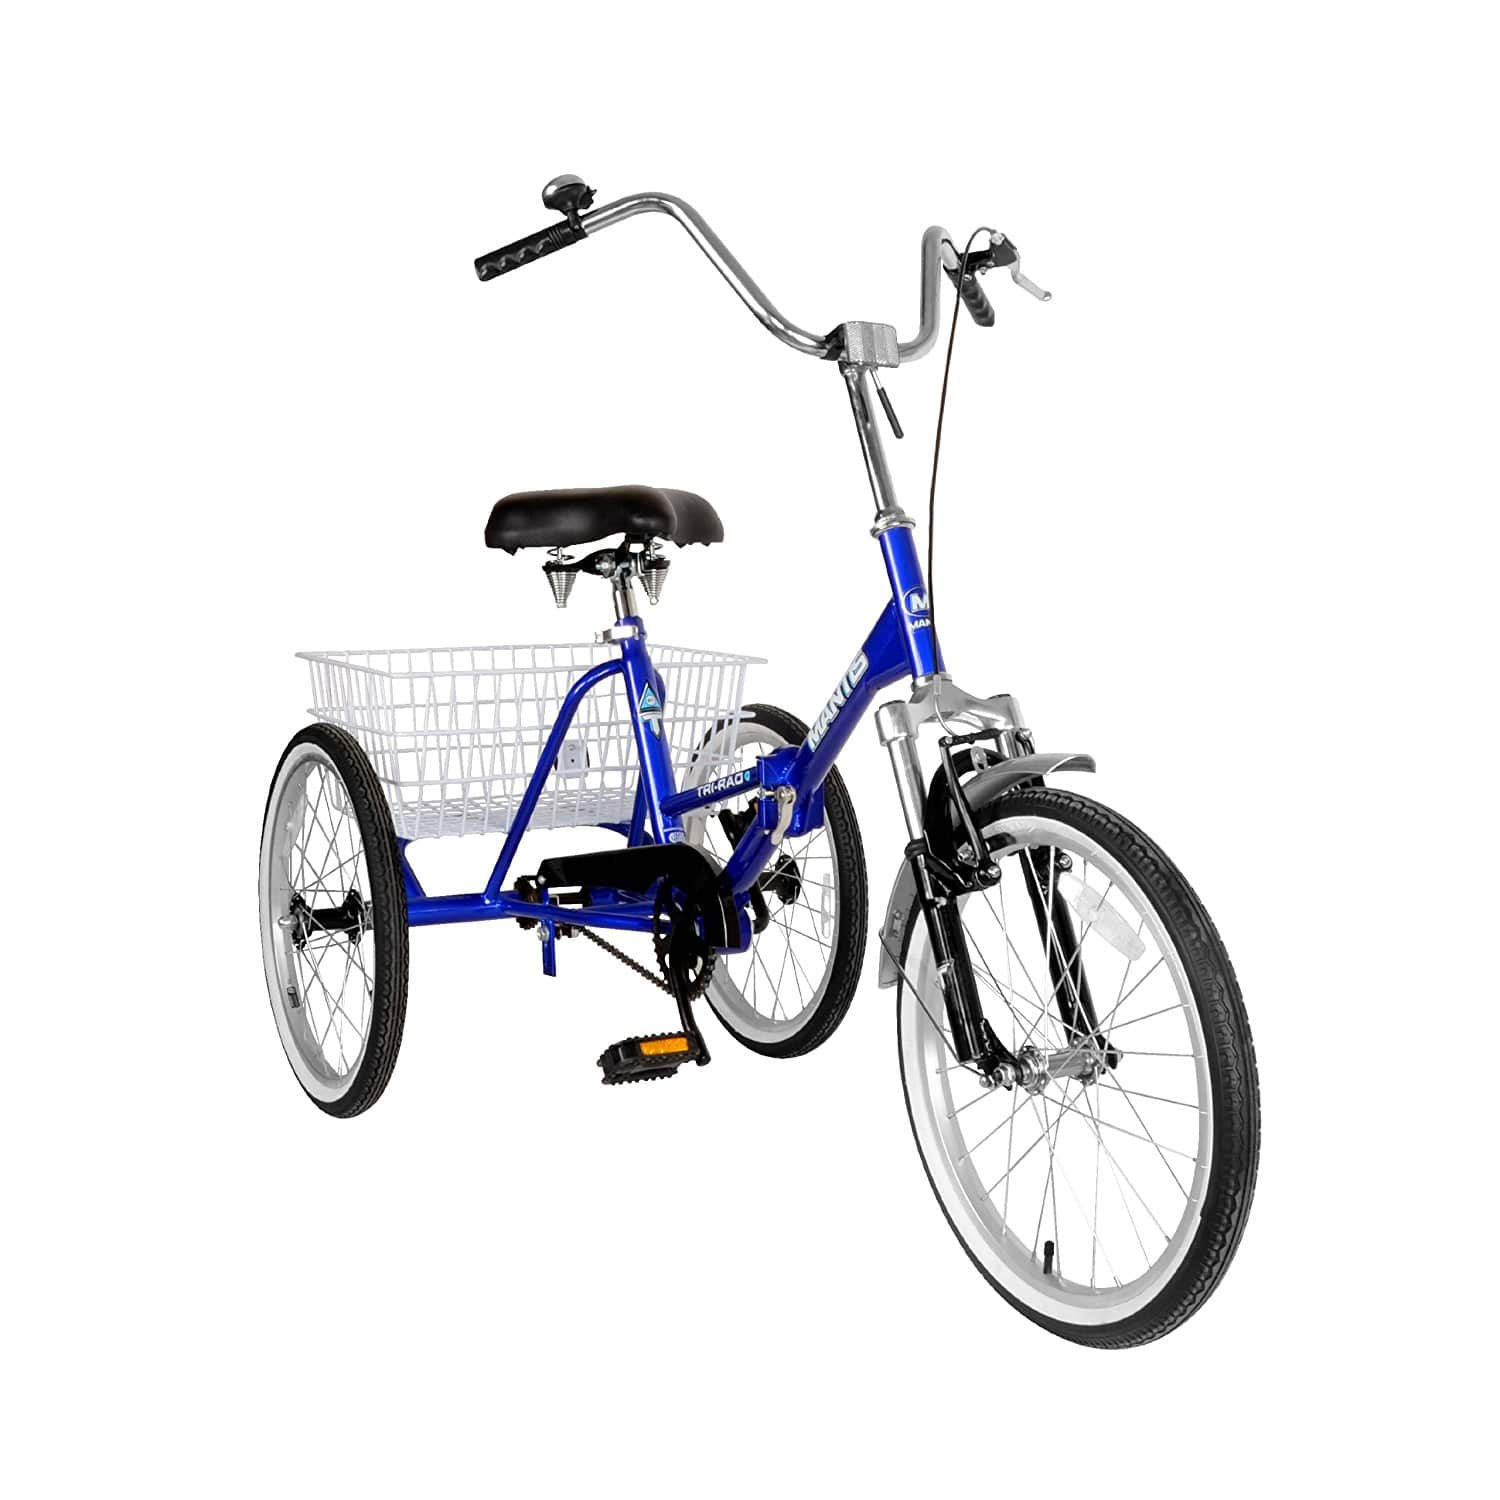 Top 12 Best Adult Tricycles Review A Complete Guide